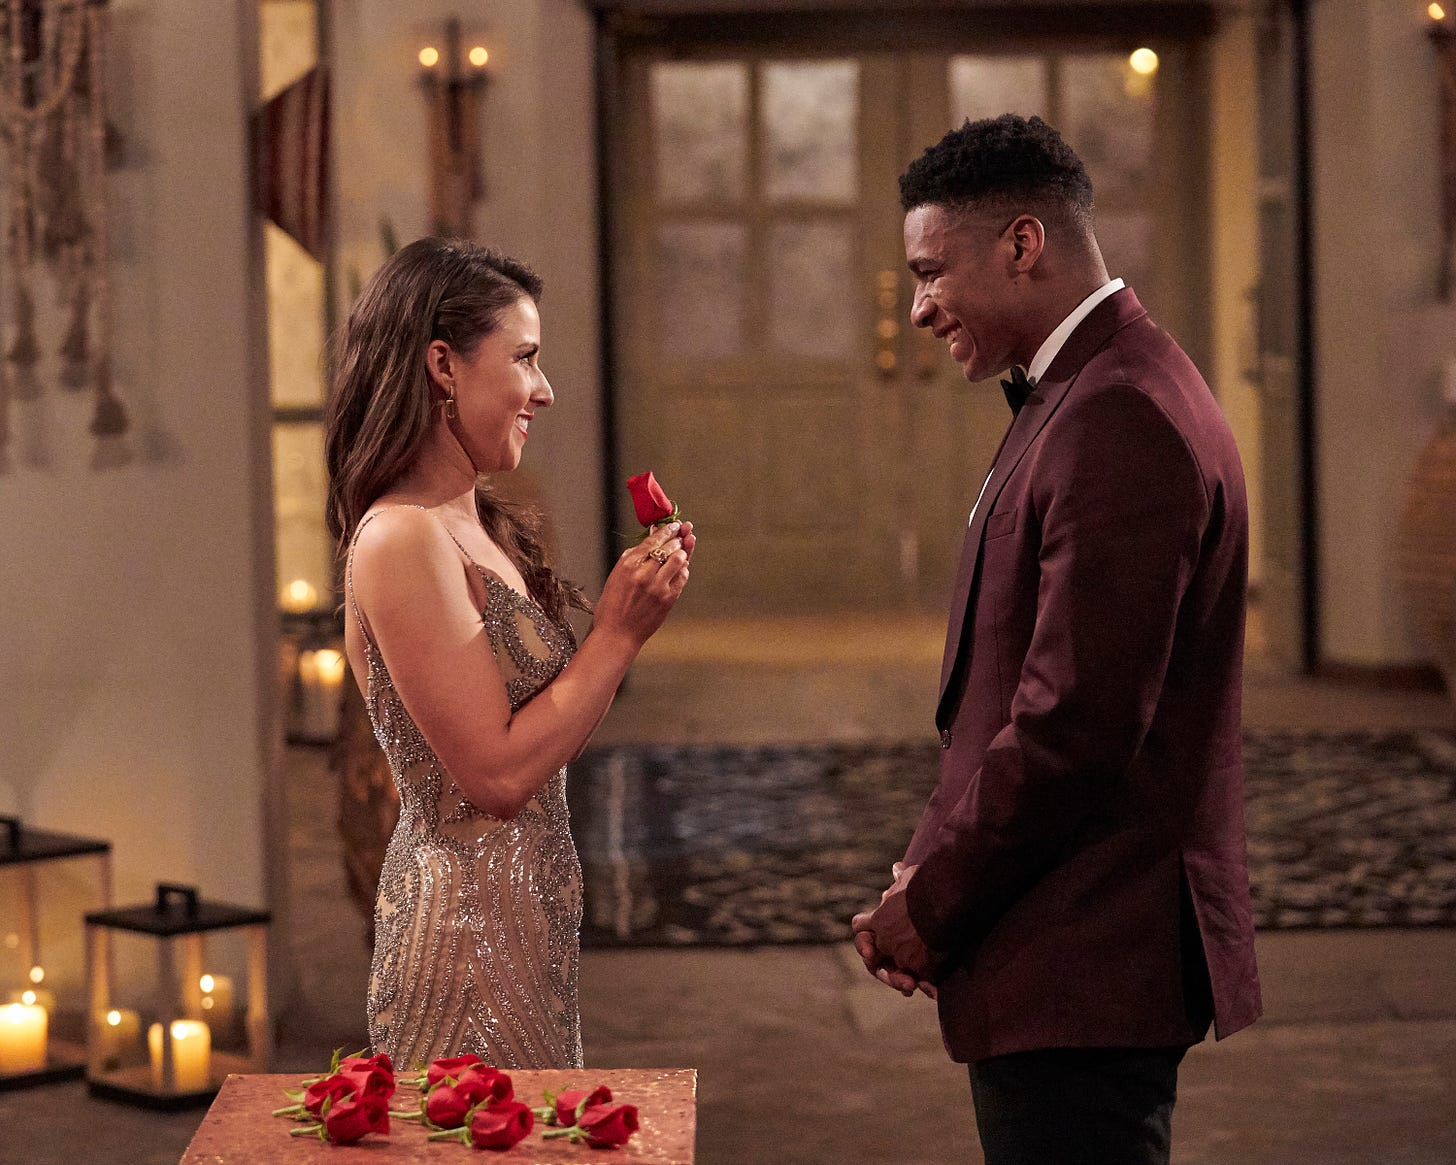 The Bachelorette Katie Thurston has a choice to make - but contestant Andrew S., like a Jane Austen hero, wants to be chosen.